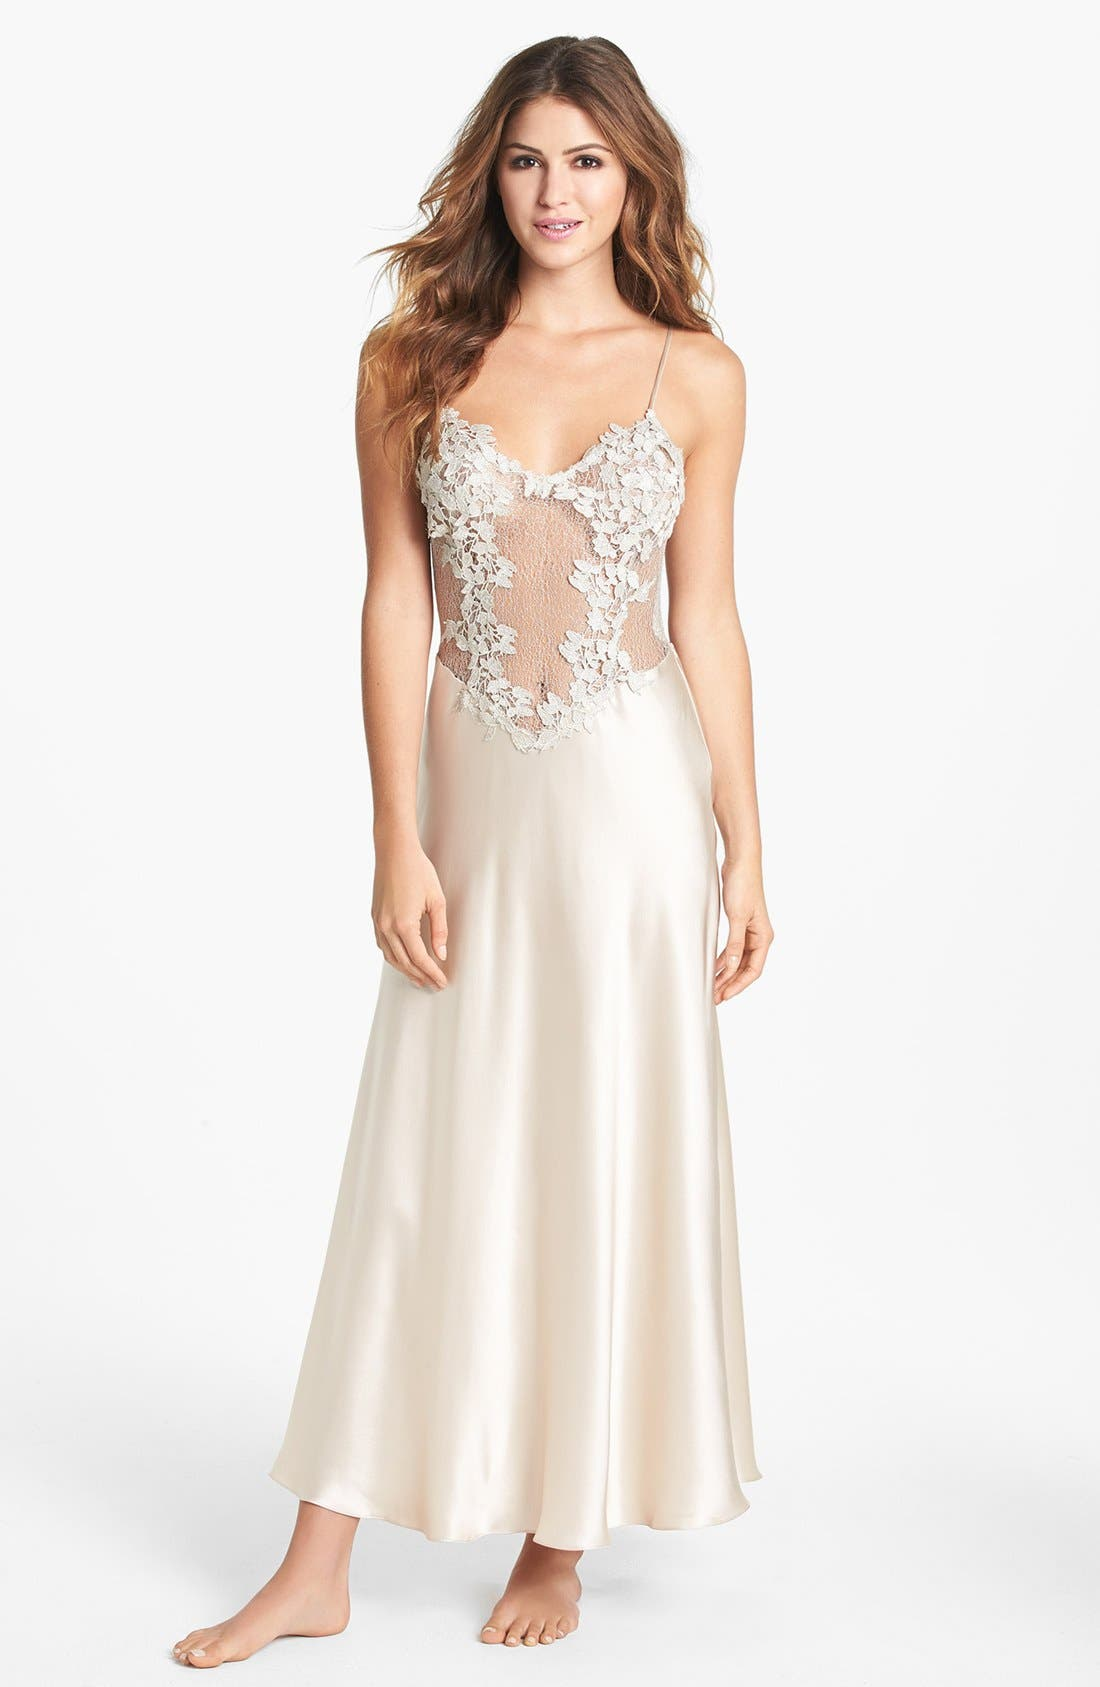 FLORA NIKROOZ, Showstopper Nightgown, Main thumbnail 1, color, CHAMPAGNE